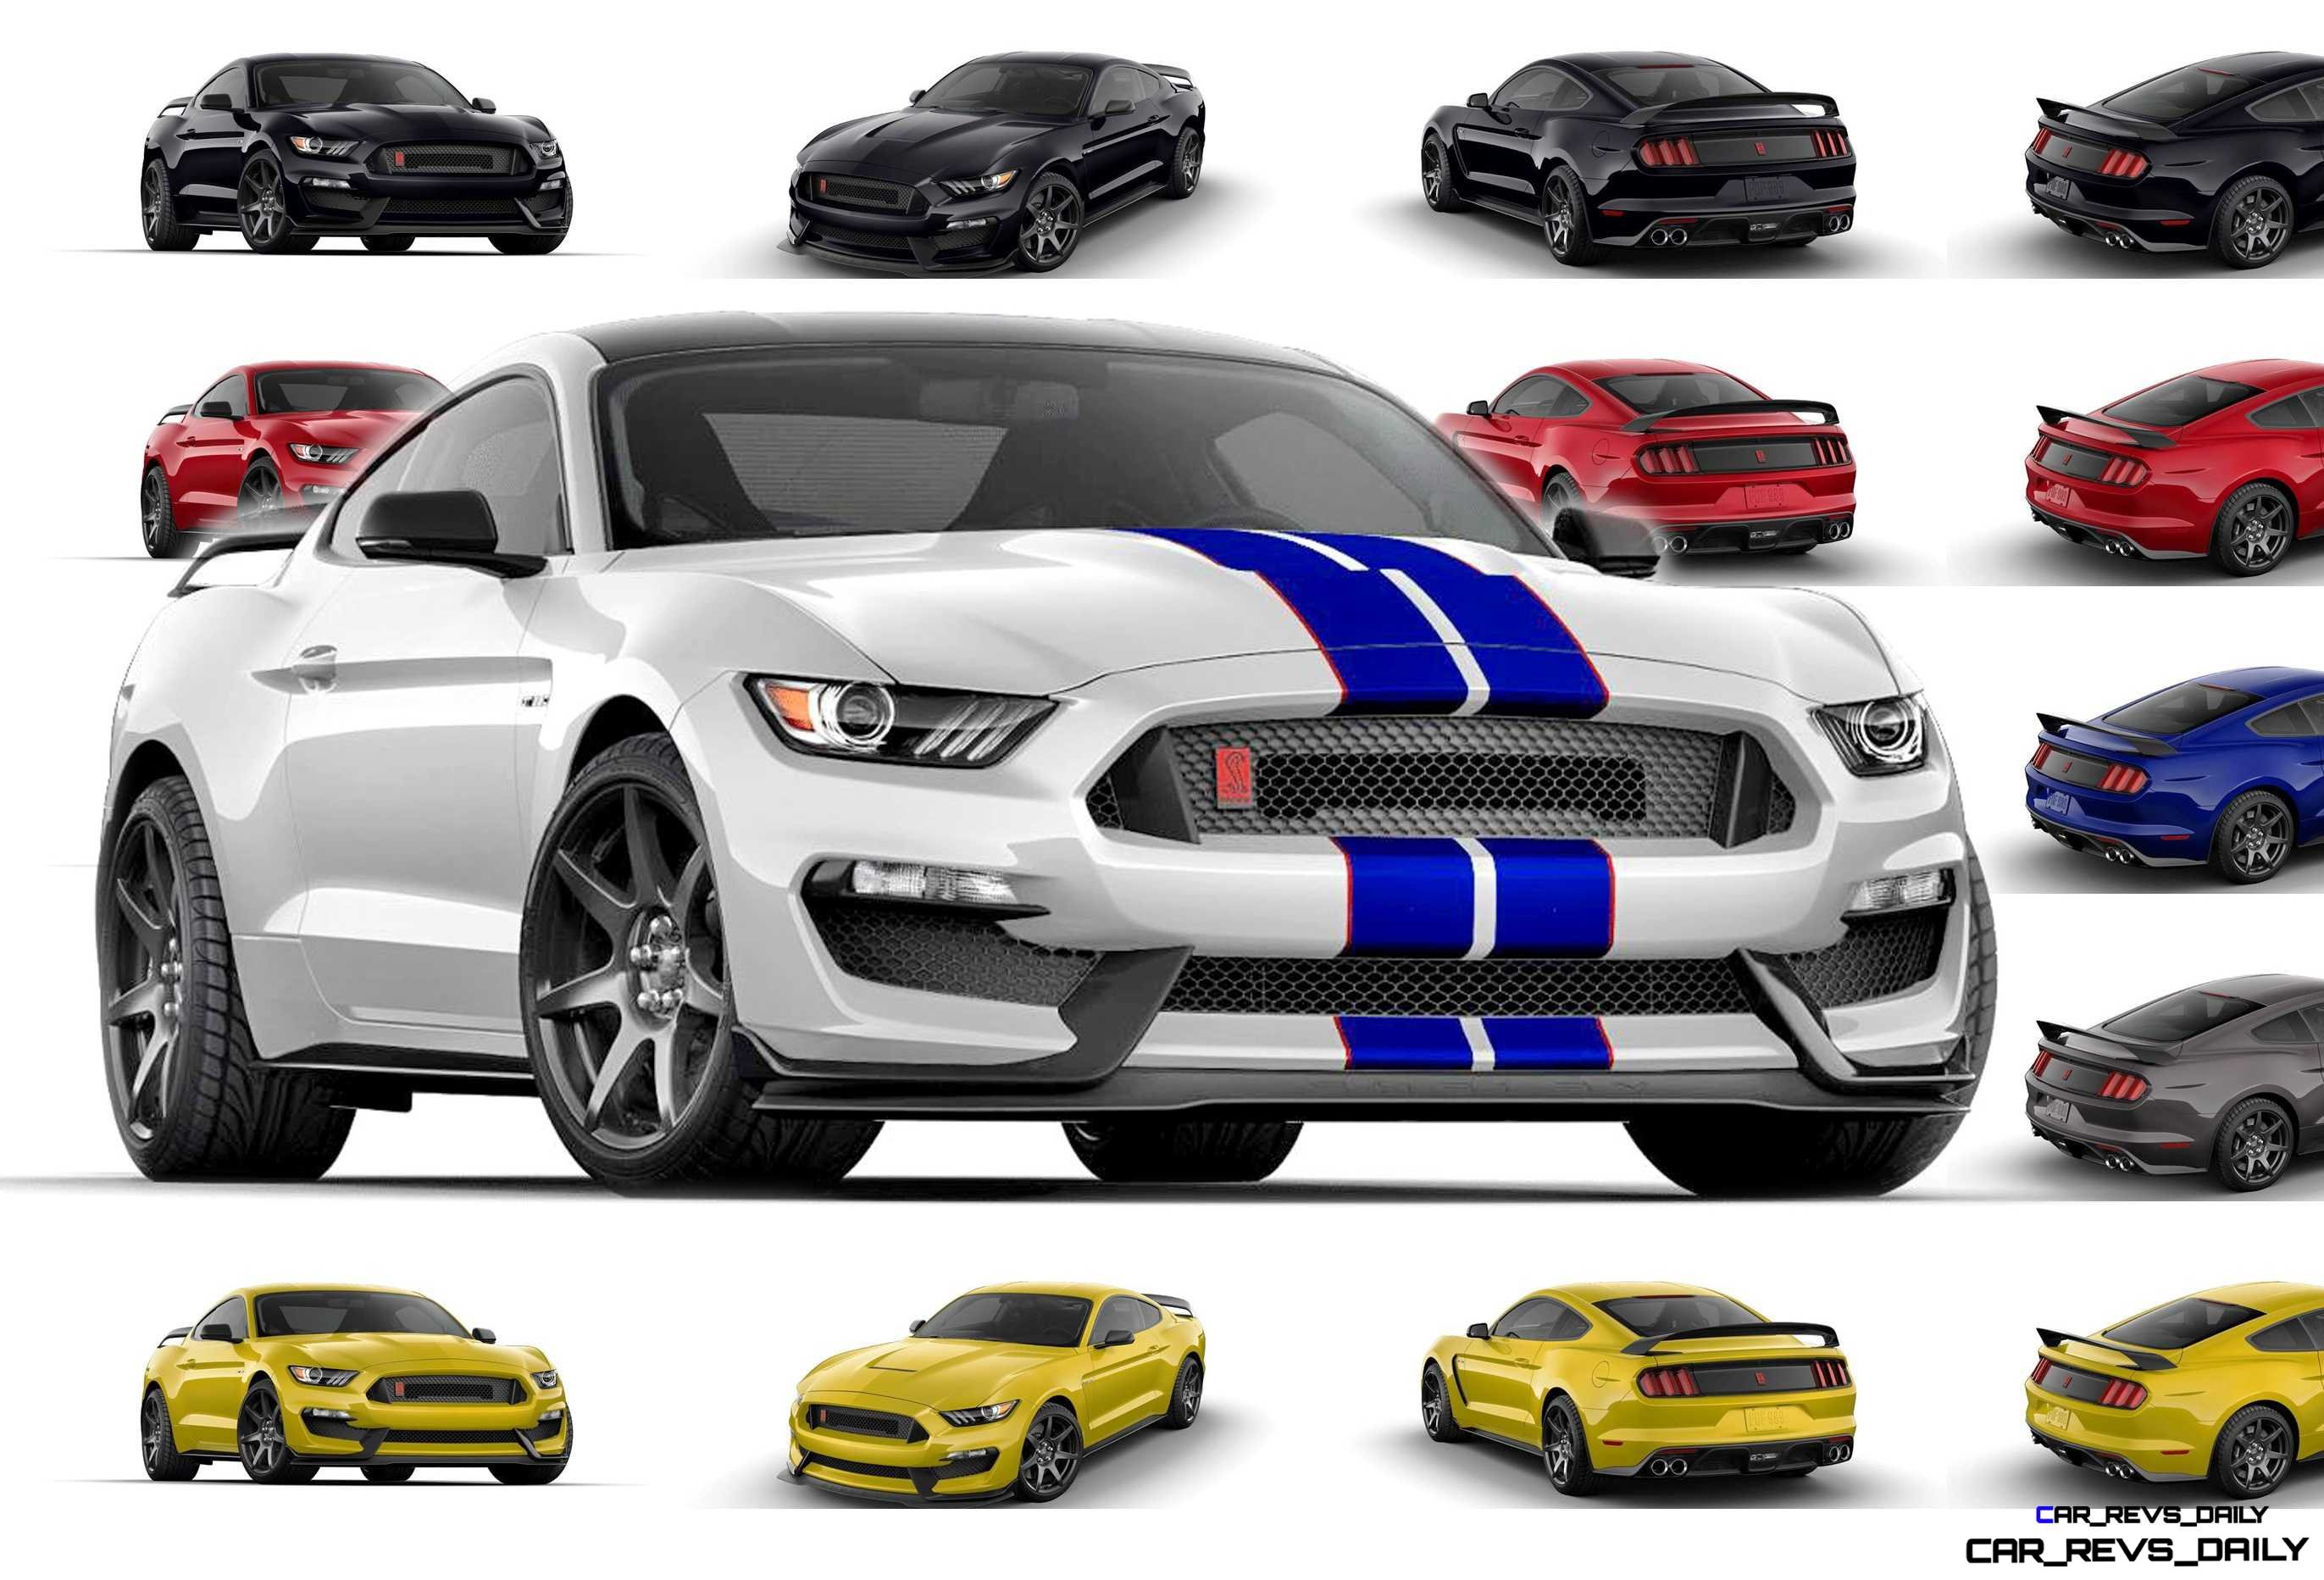 2016 Mustang Colors >> 2016 Shelby Ford Mustang Gt350r Colors